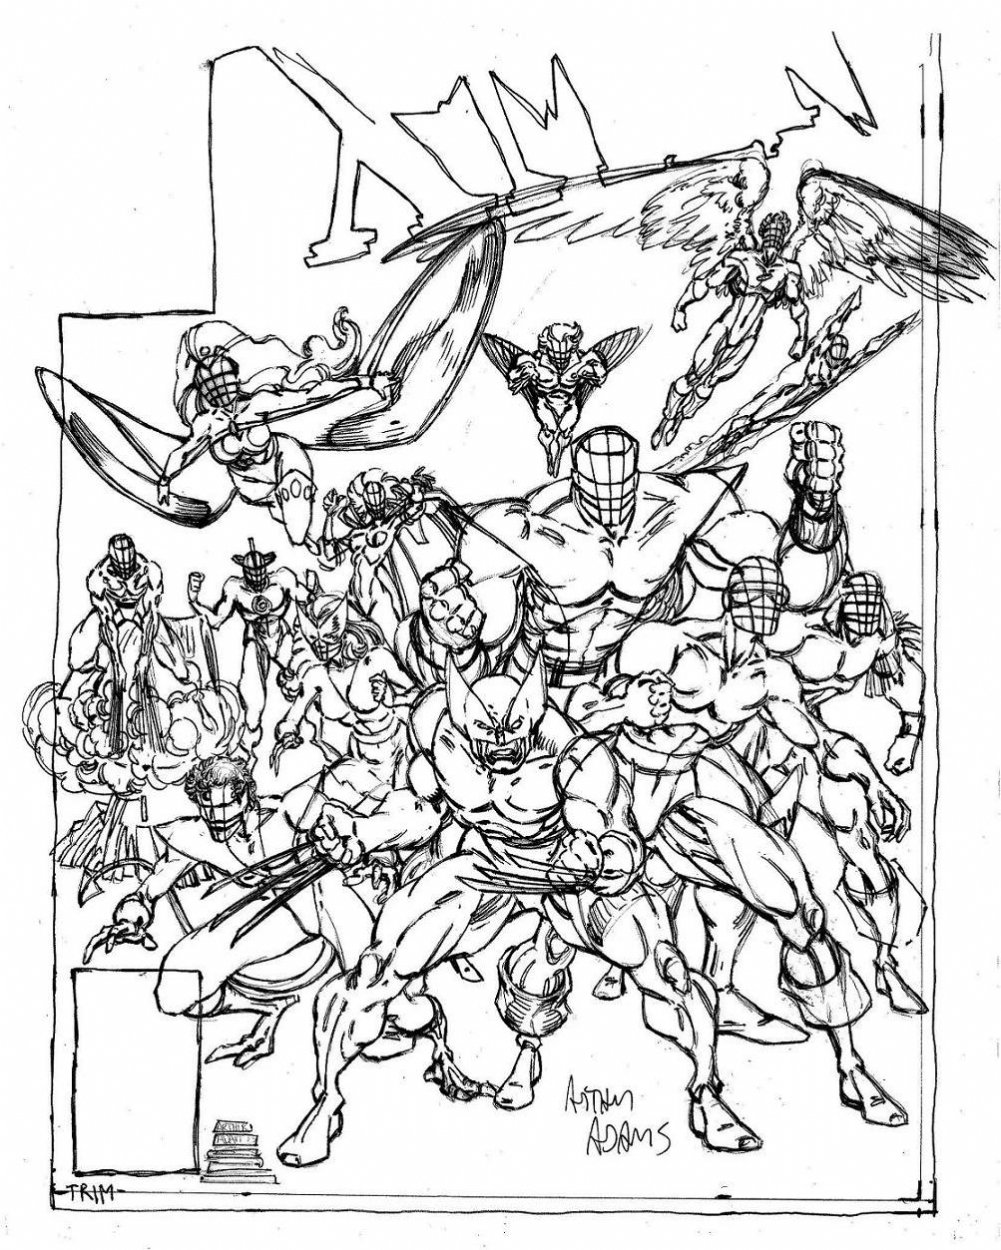 Arthur Adams - Classic X-Men sketch 2